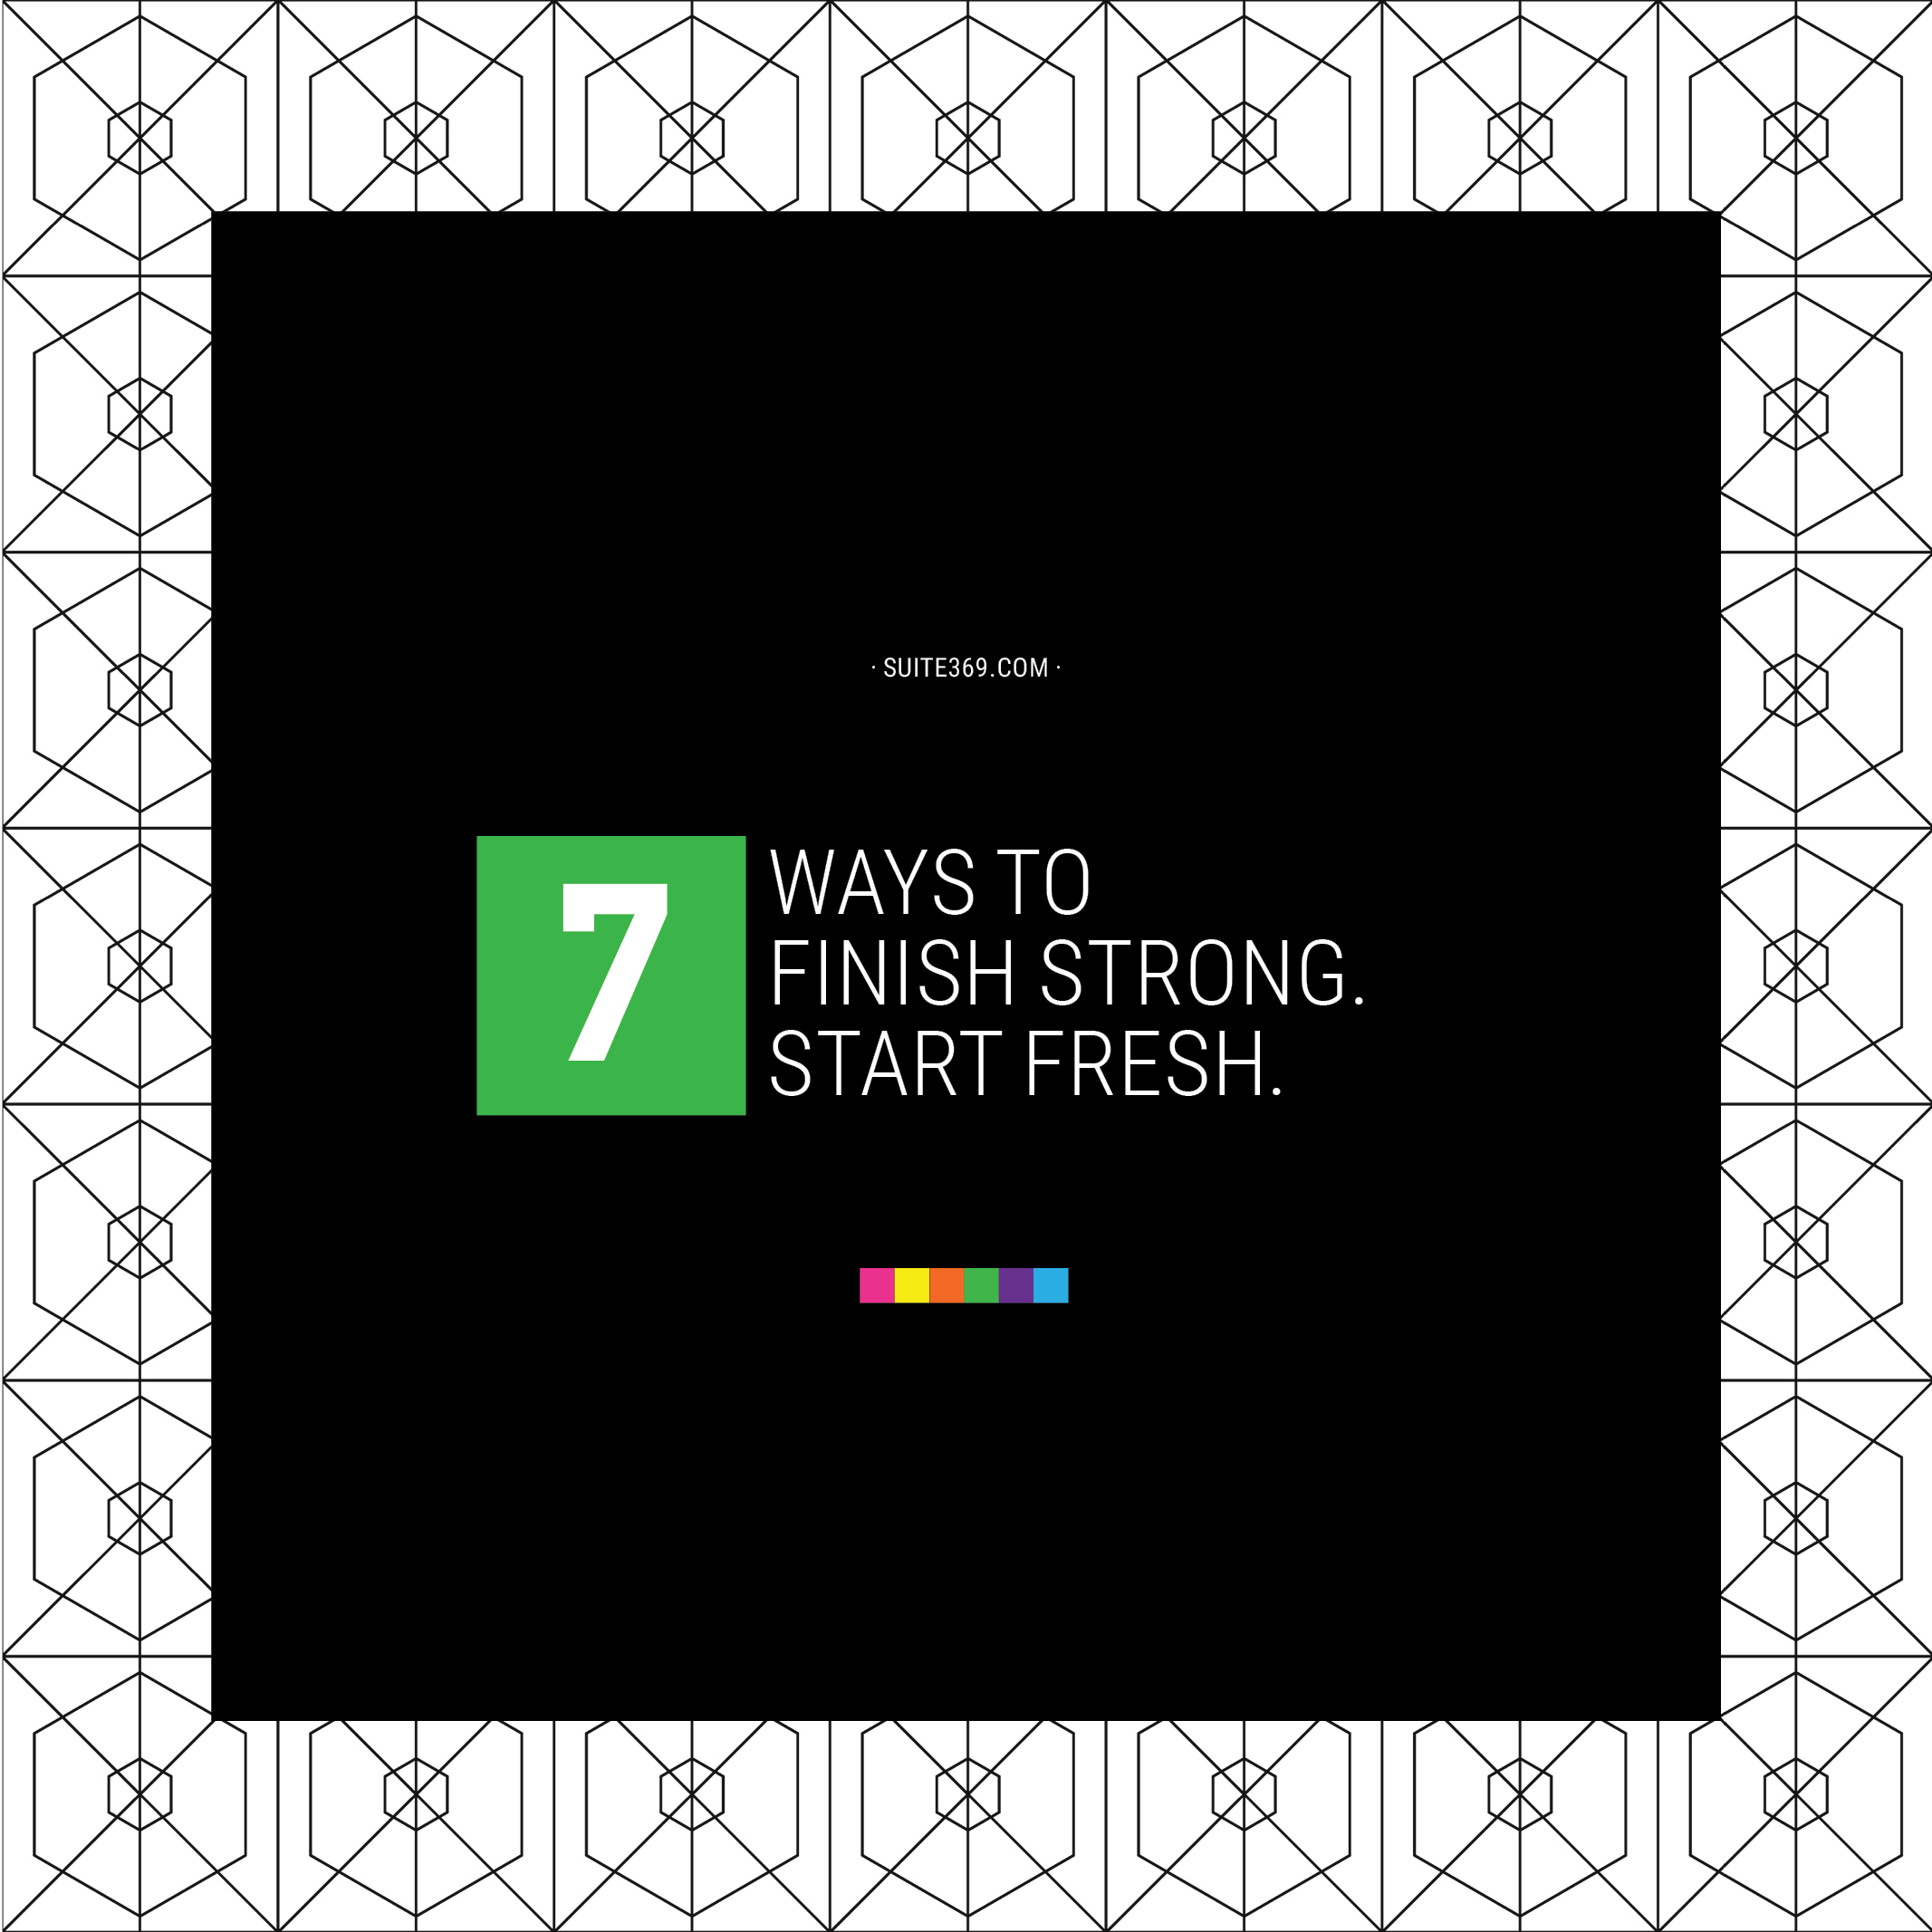 7 Ways to Finish Strong. Start Fresh. One should always strive to improve. Every year during my down time I commit to learning or improving on a technique or how to use a tool better… Suite369.com